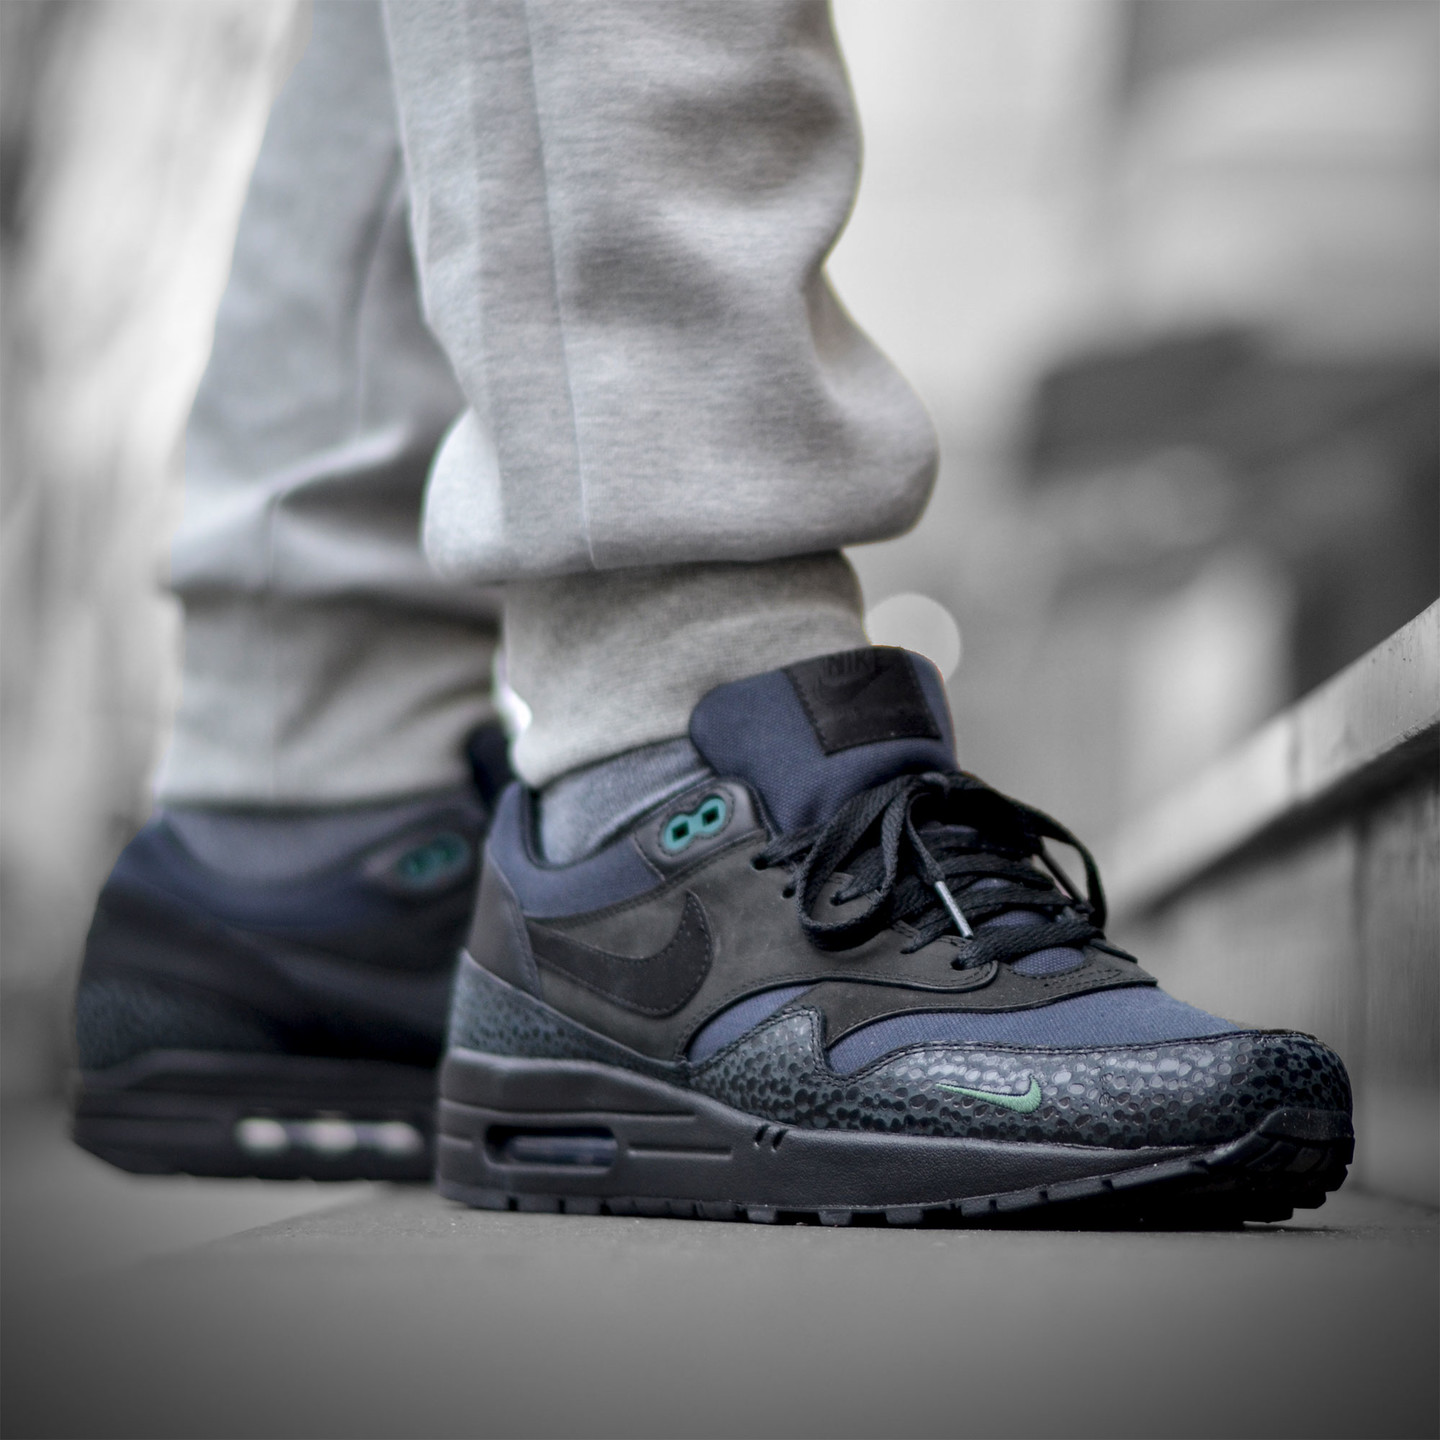 Nike Air Max 1 Premium 'Bonsai Safari' Black / Black / Bonsai 512033-030-42